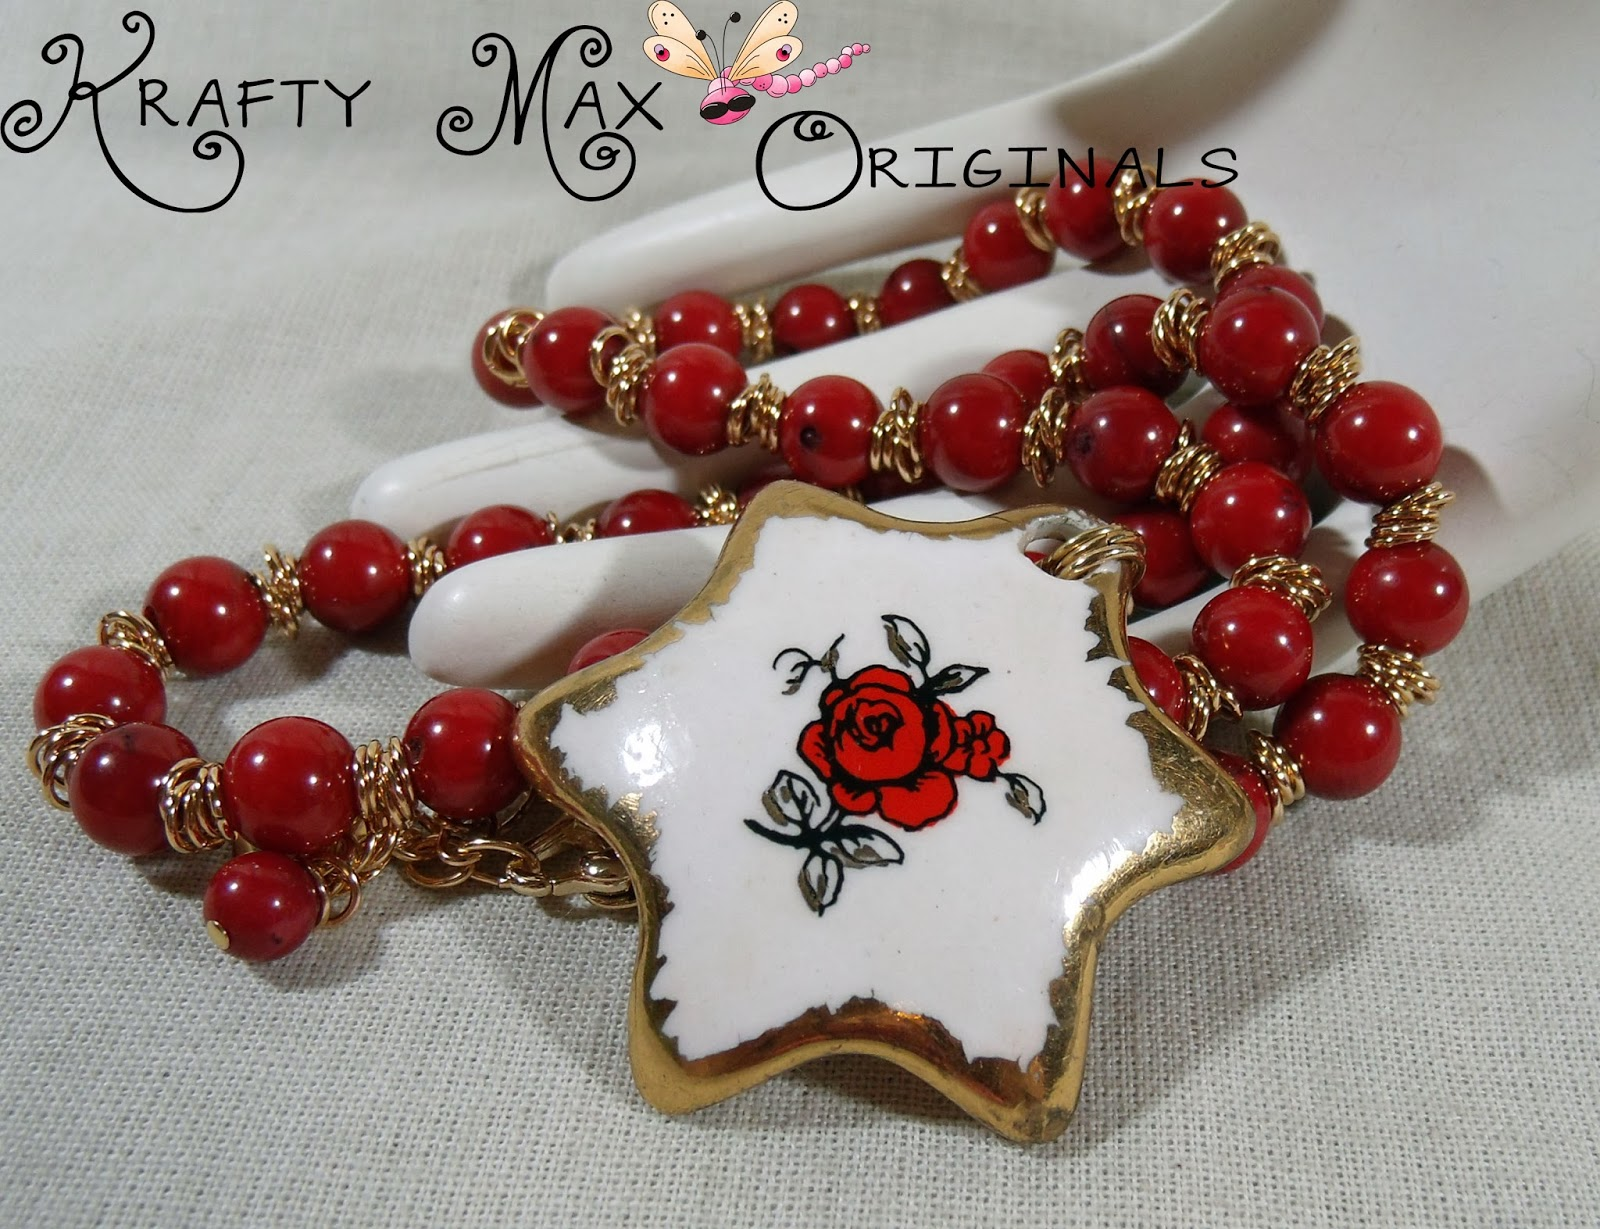 http://www.lajuliet.com/index.php/2013-01-04-15-21-51/ad/gemstone,92/exclusive-beautiful-vintage-red-ceramic-star-necklace-set-from-my-grandmother-s-stash-a-krafty-max-original-design,126